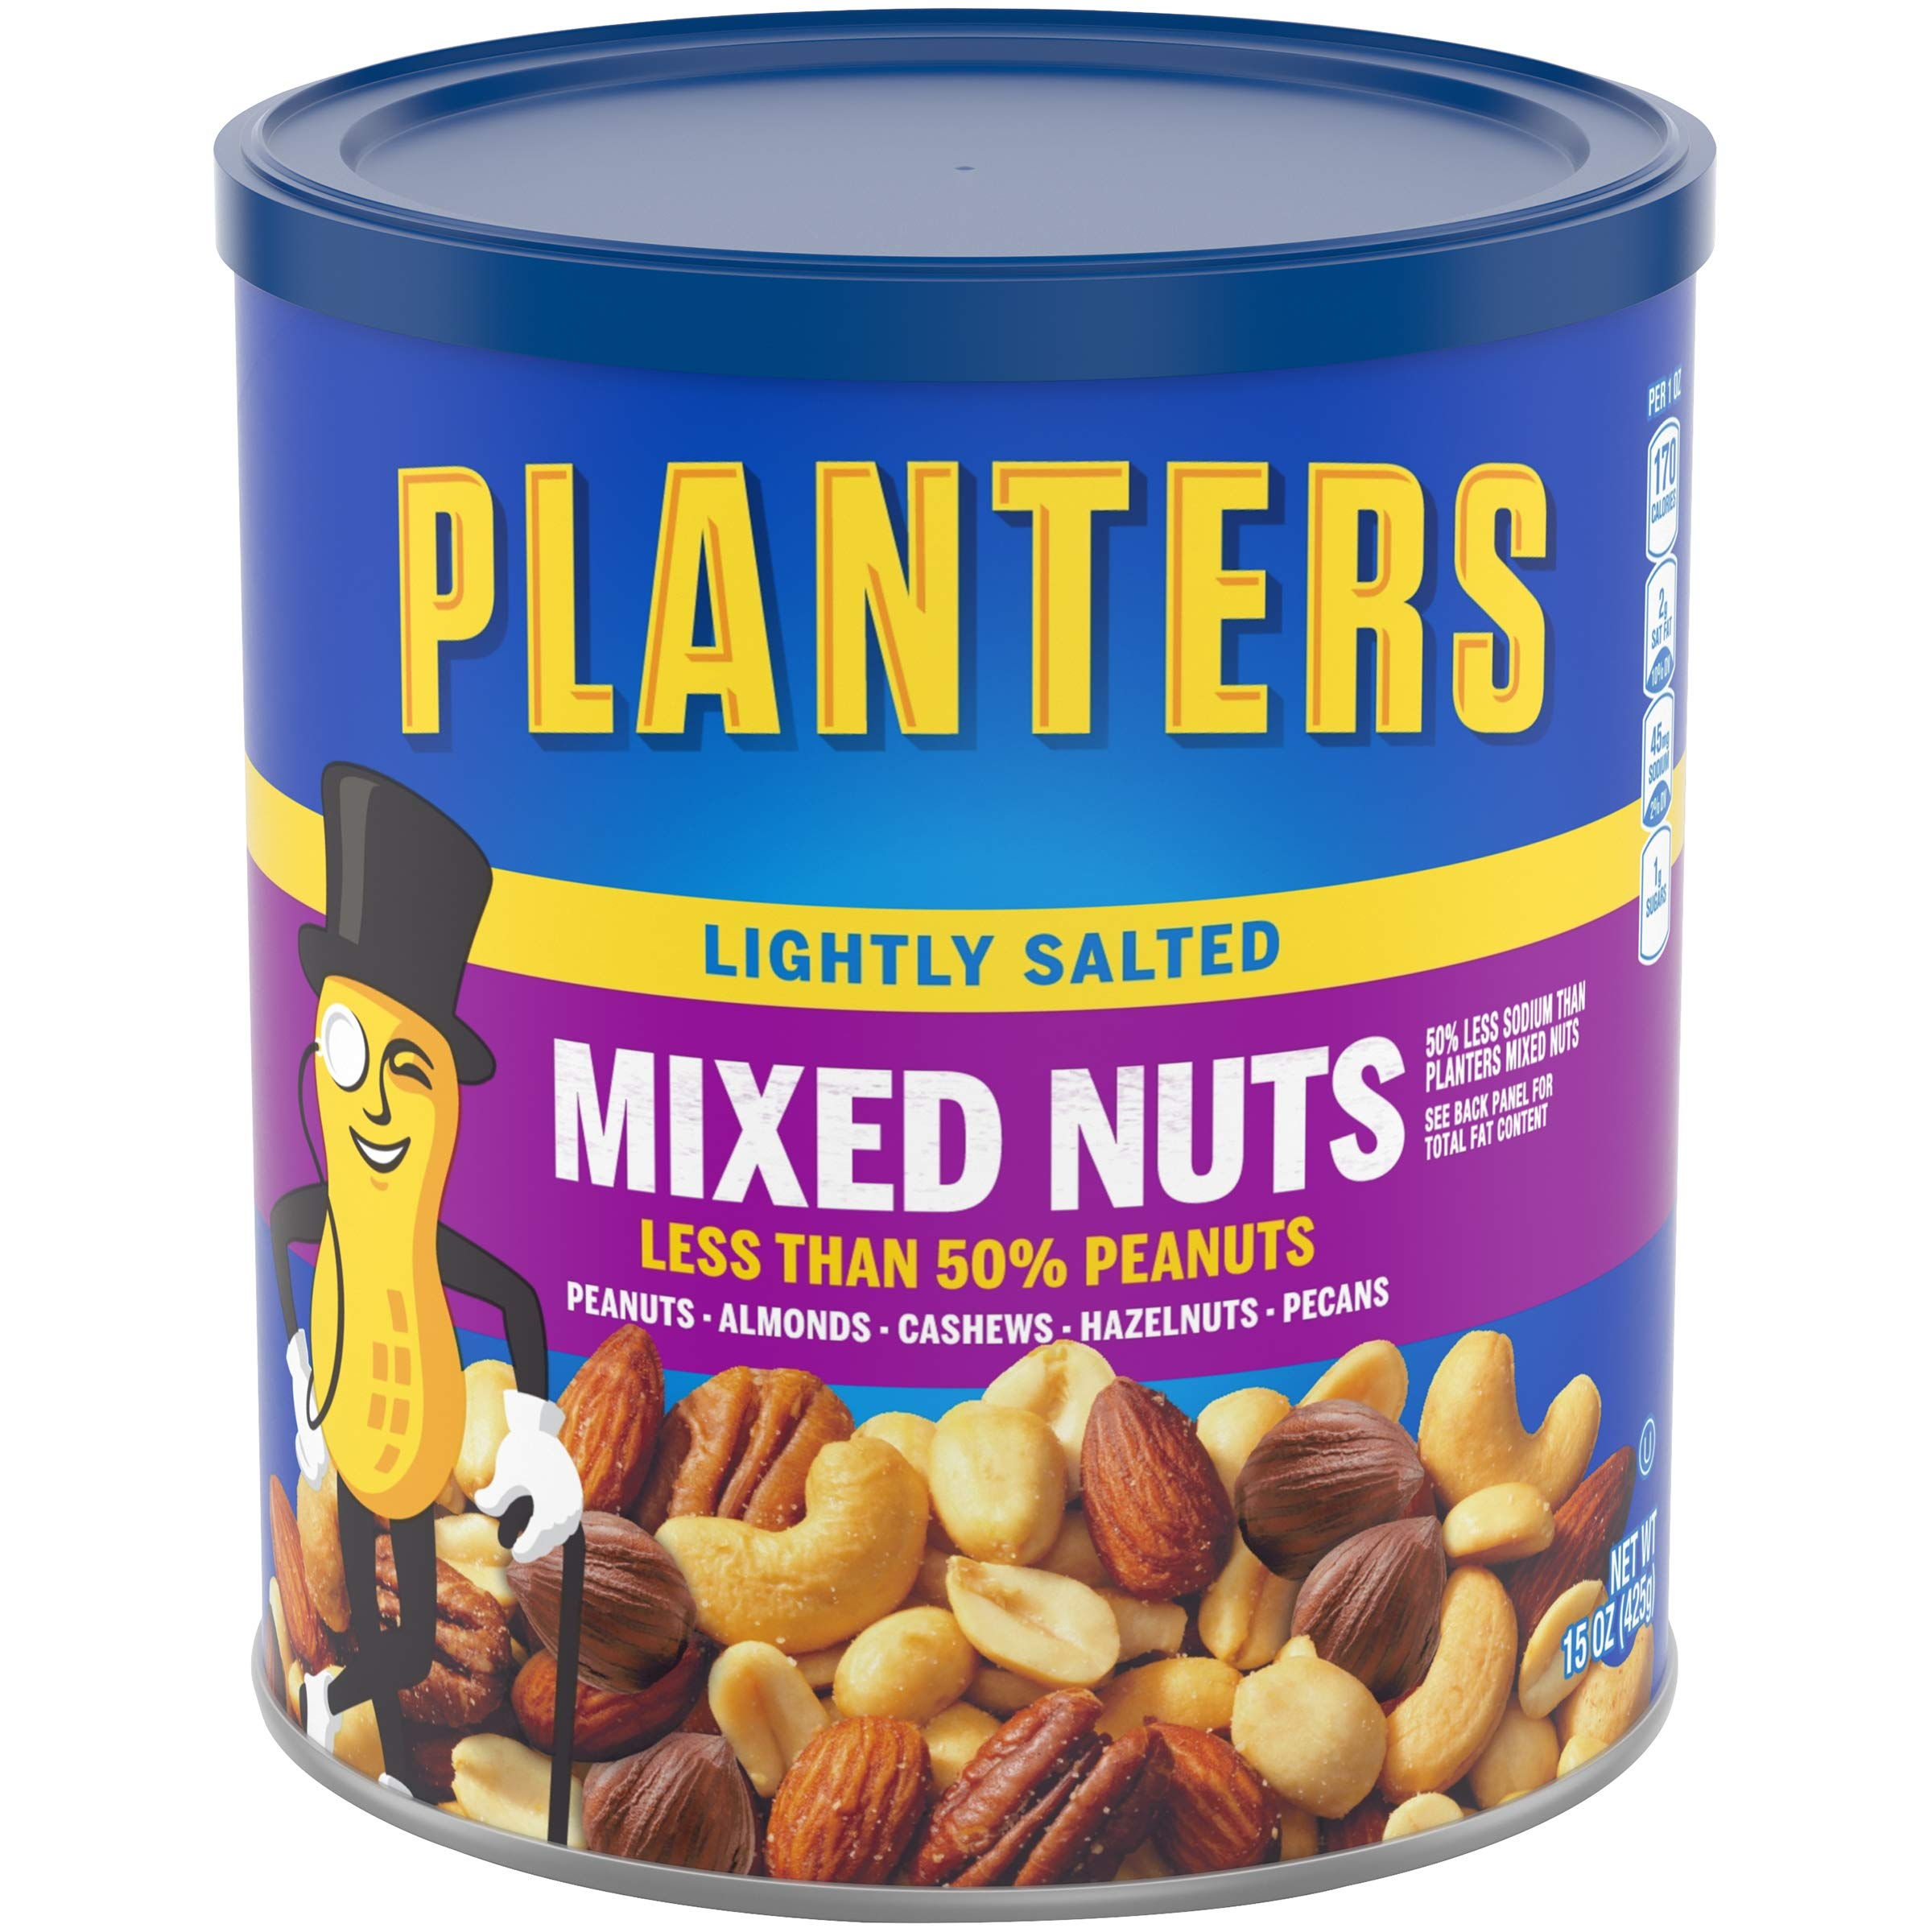 Planters Lightly Salted Mixed Nuts (15 oz Canister, Pack of 3)